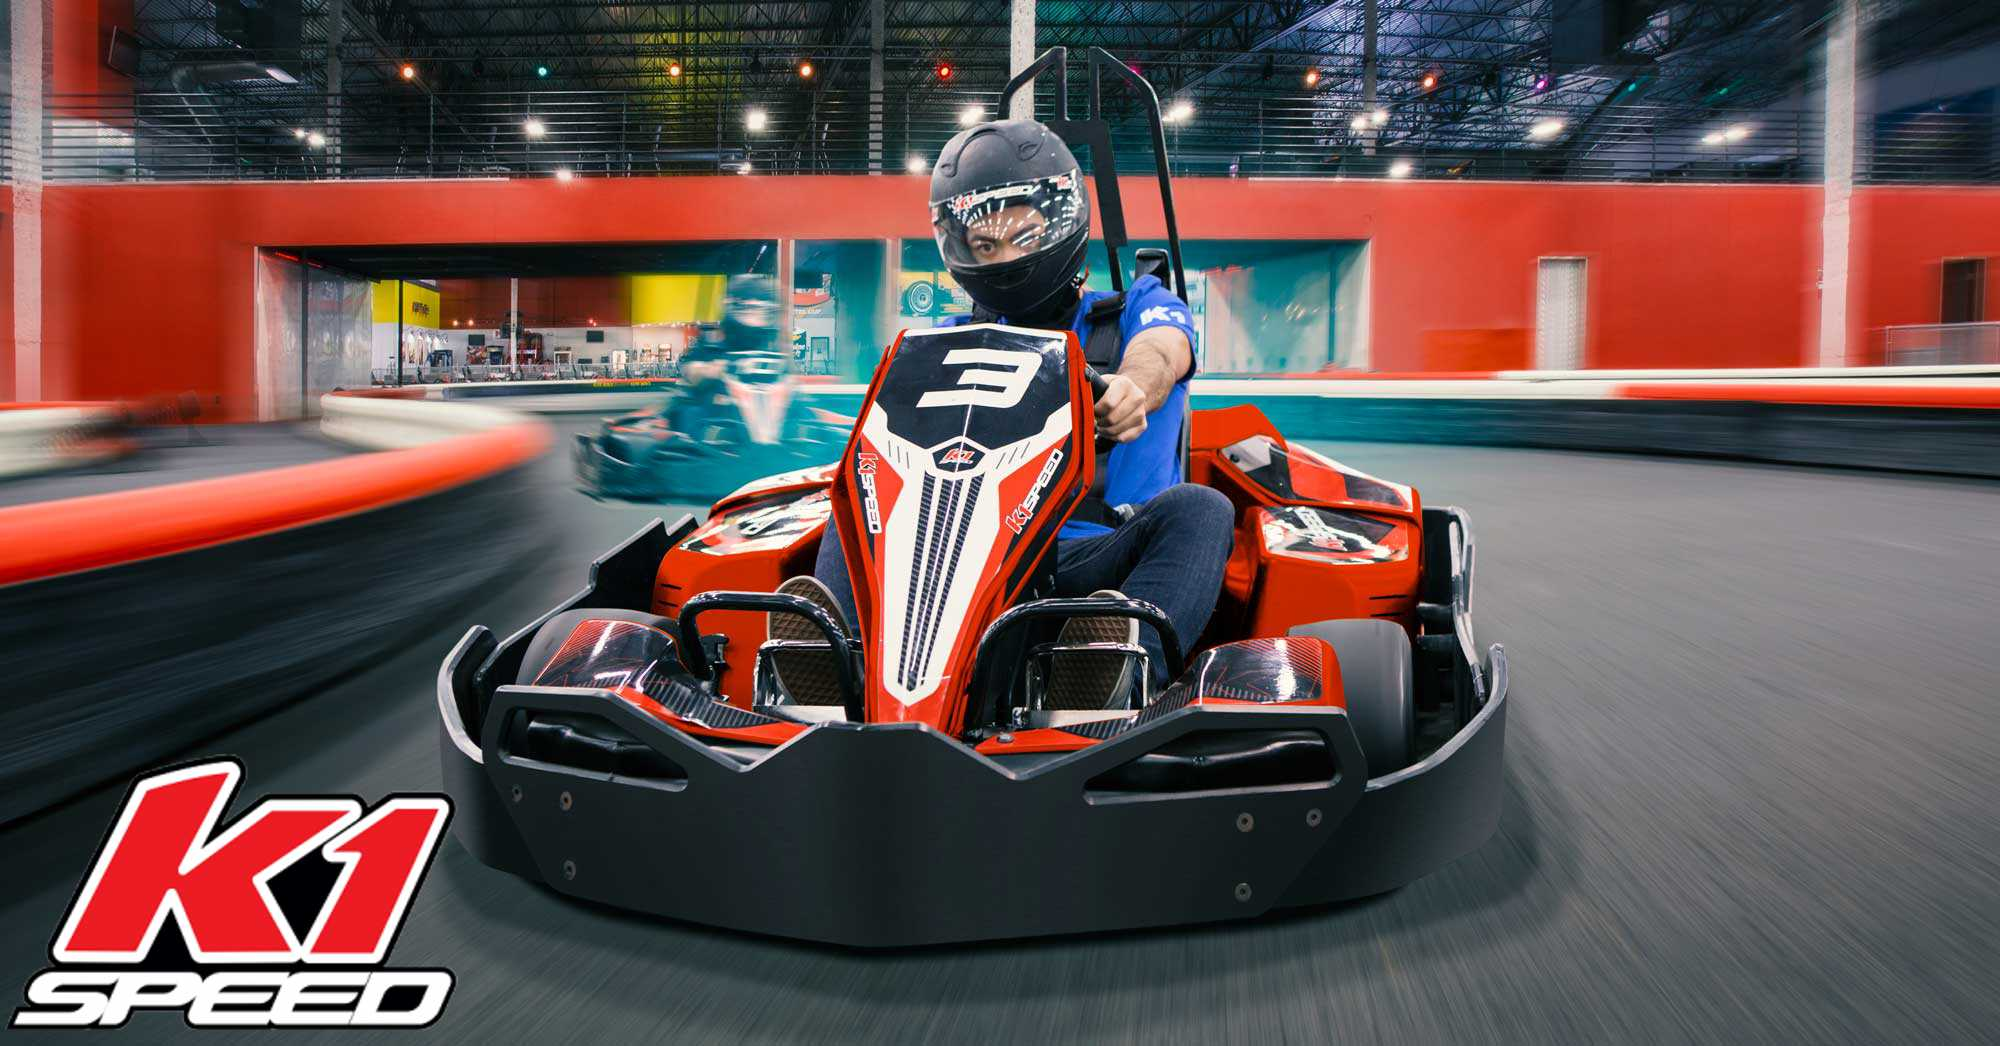 K1 speed irvine prices